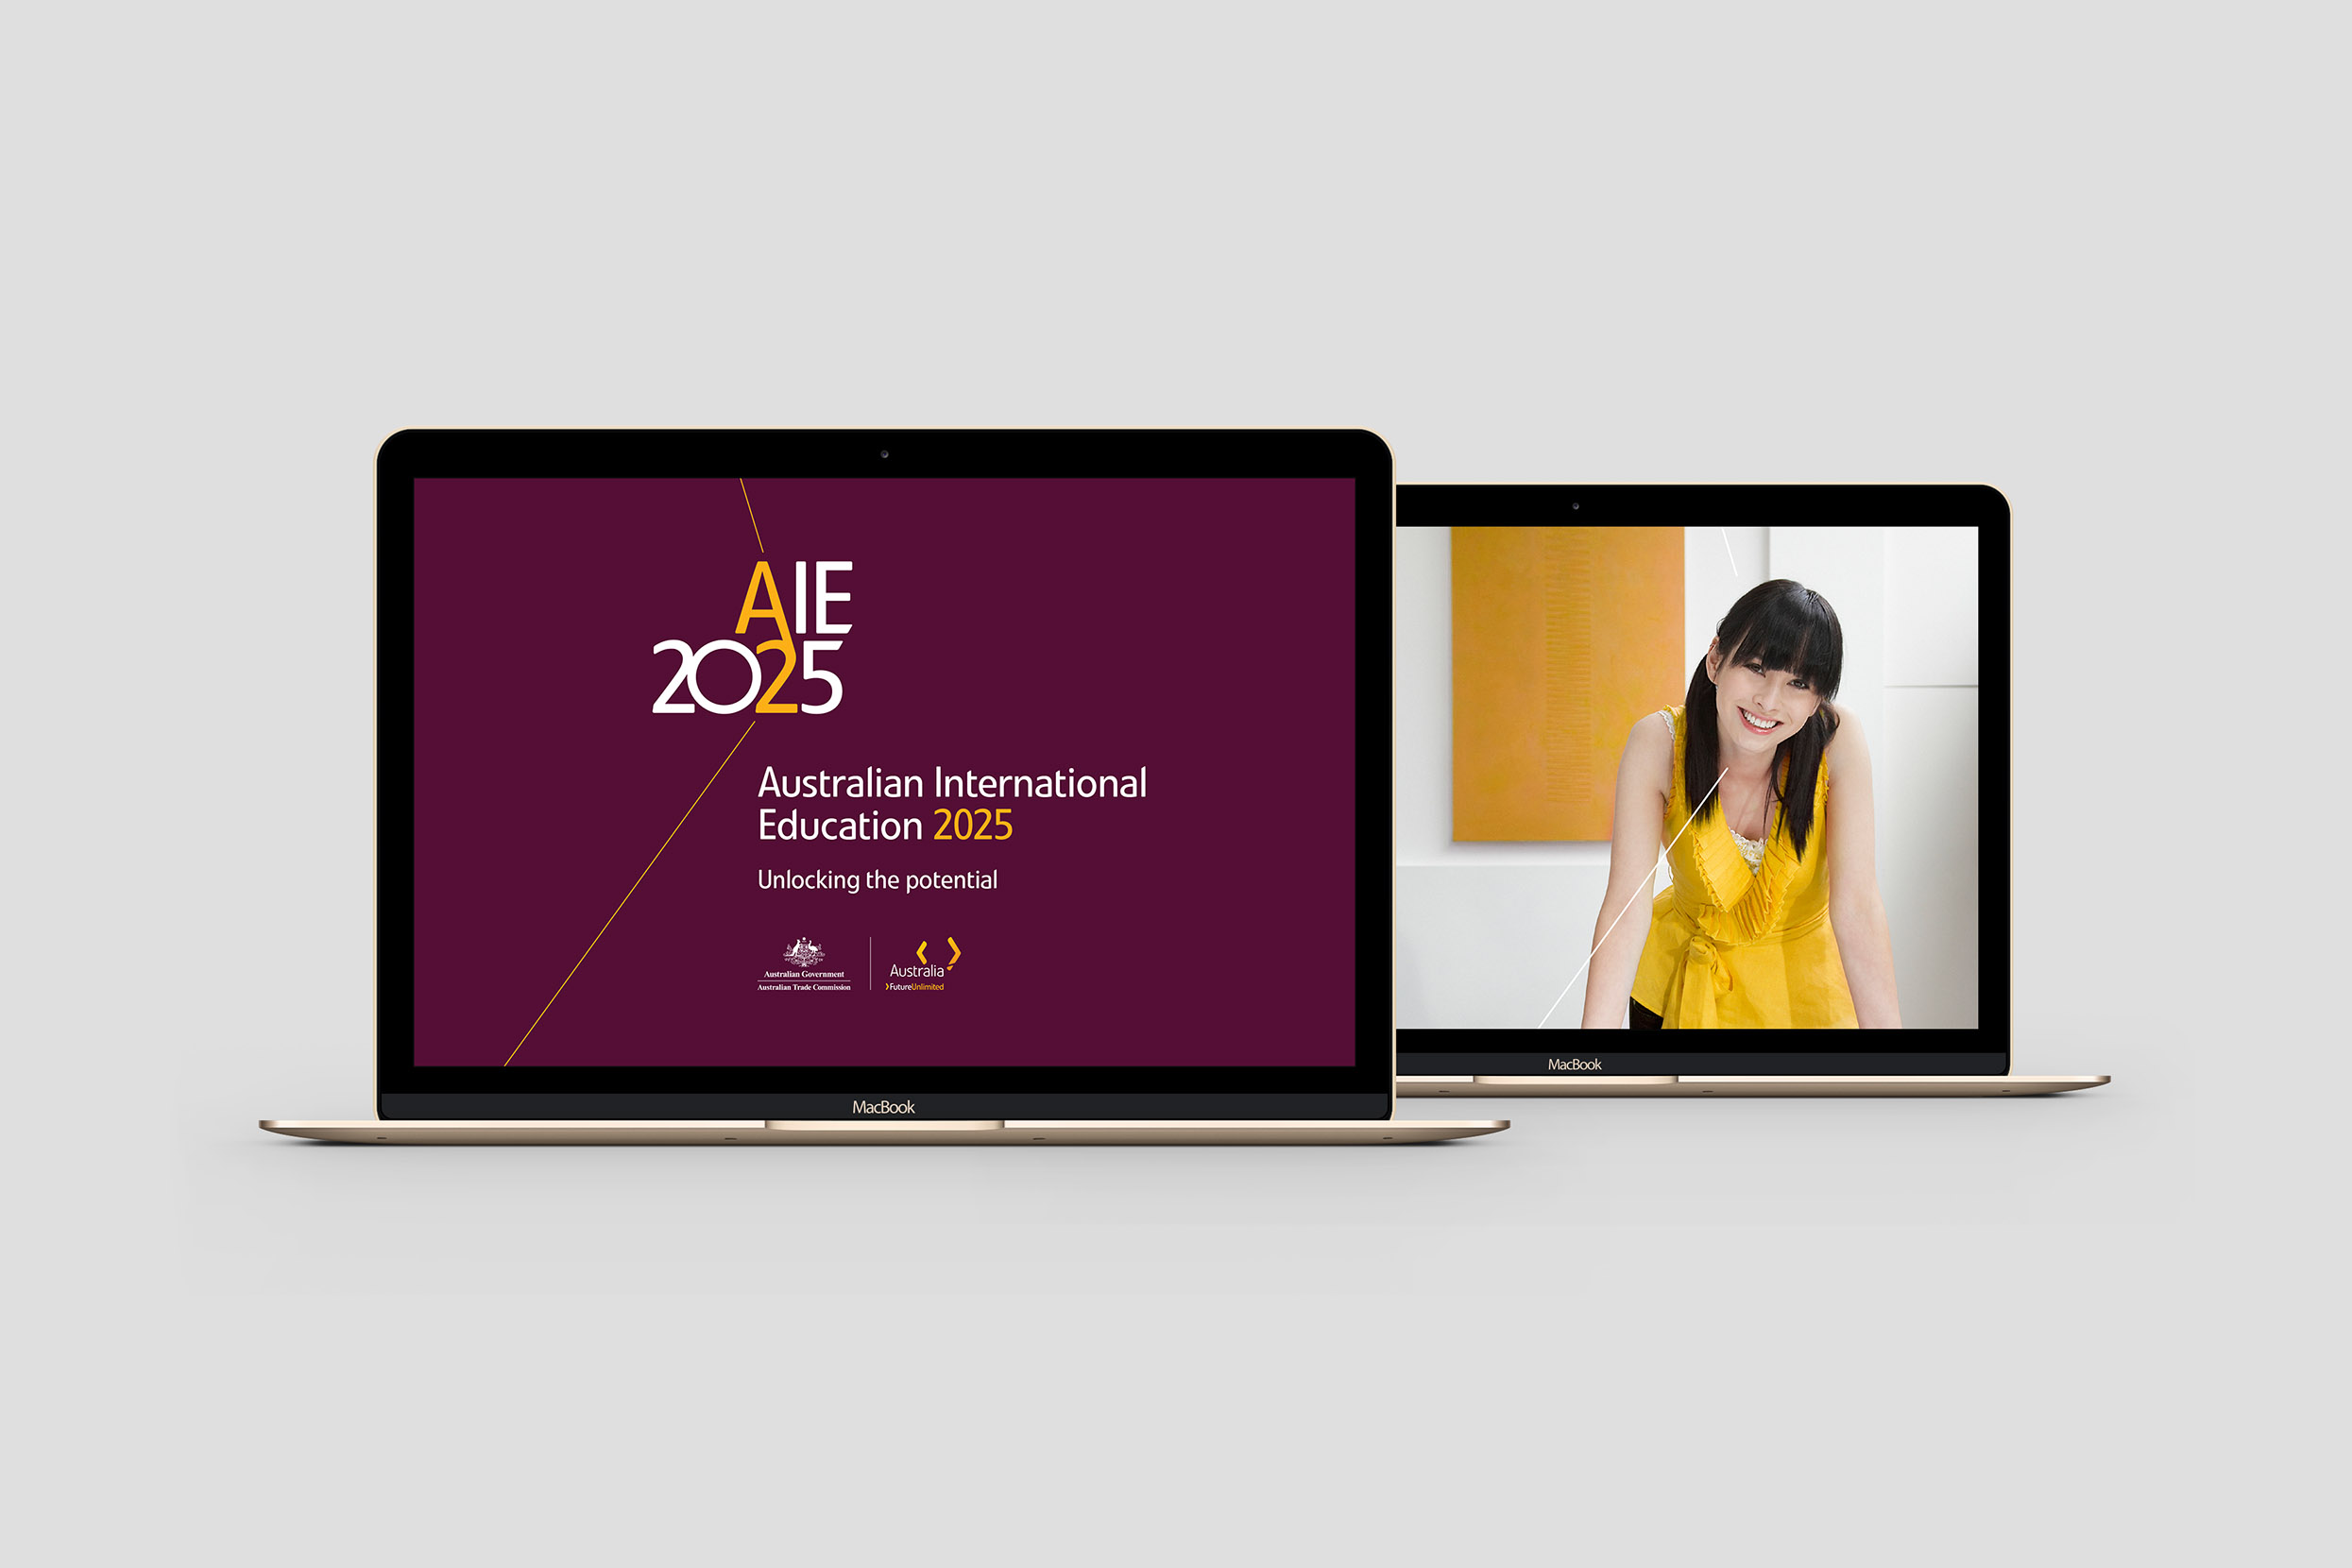 aie2025-macbook-gold-2up